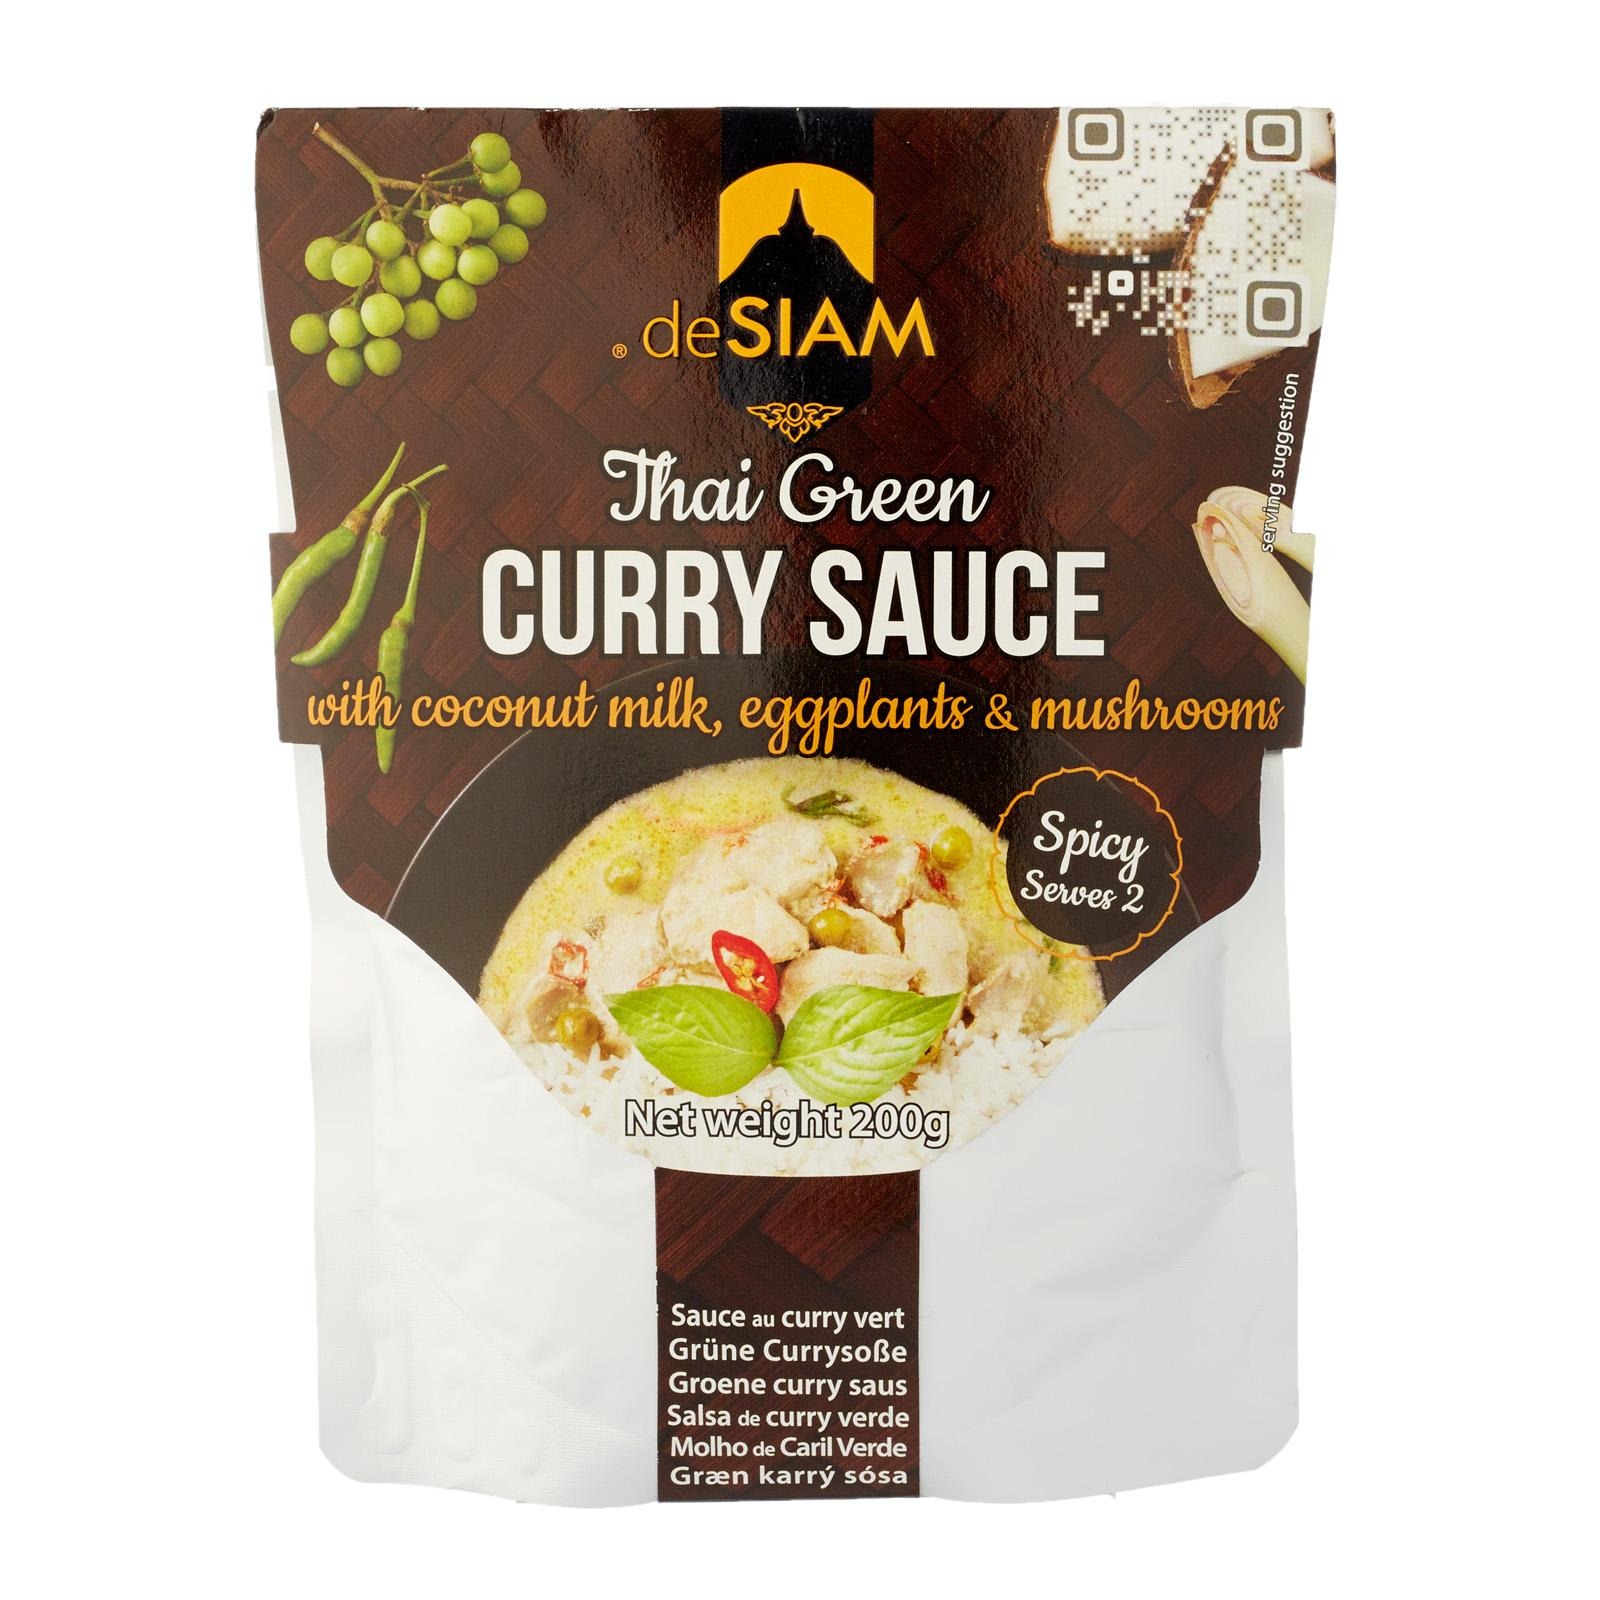 Desiam Thai Green Curry Sauce By Redmart.